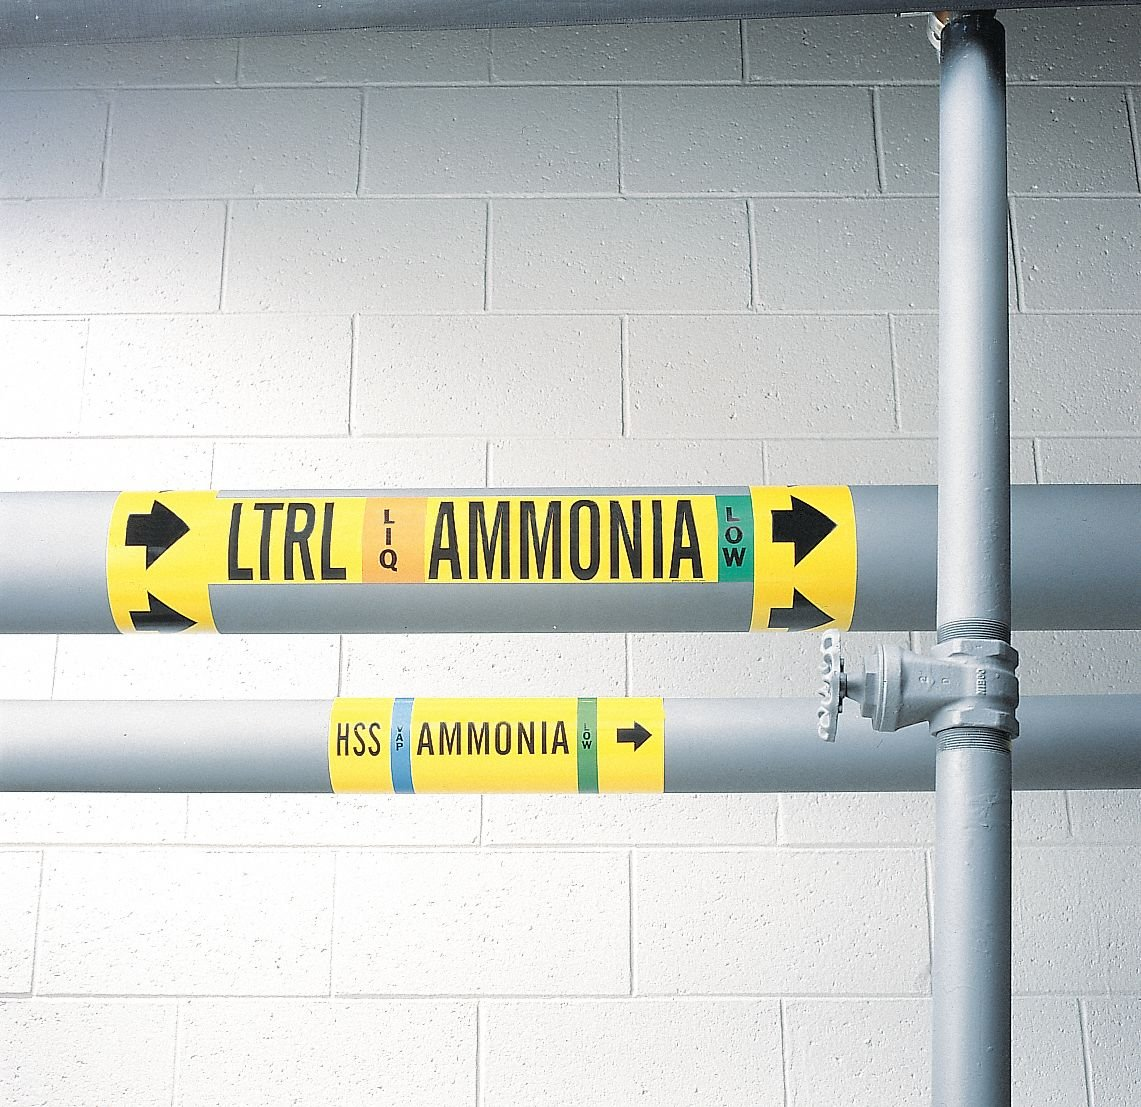 """Ammonia Vapor Pipe Marker, Fits Pipe O.D. 1-1/2""""2-3/8'', Low Pressure Level, LTS, 1 EA"""